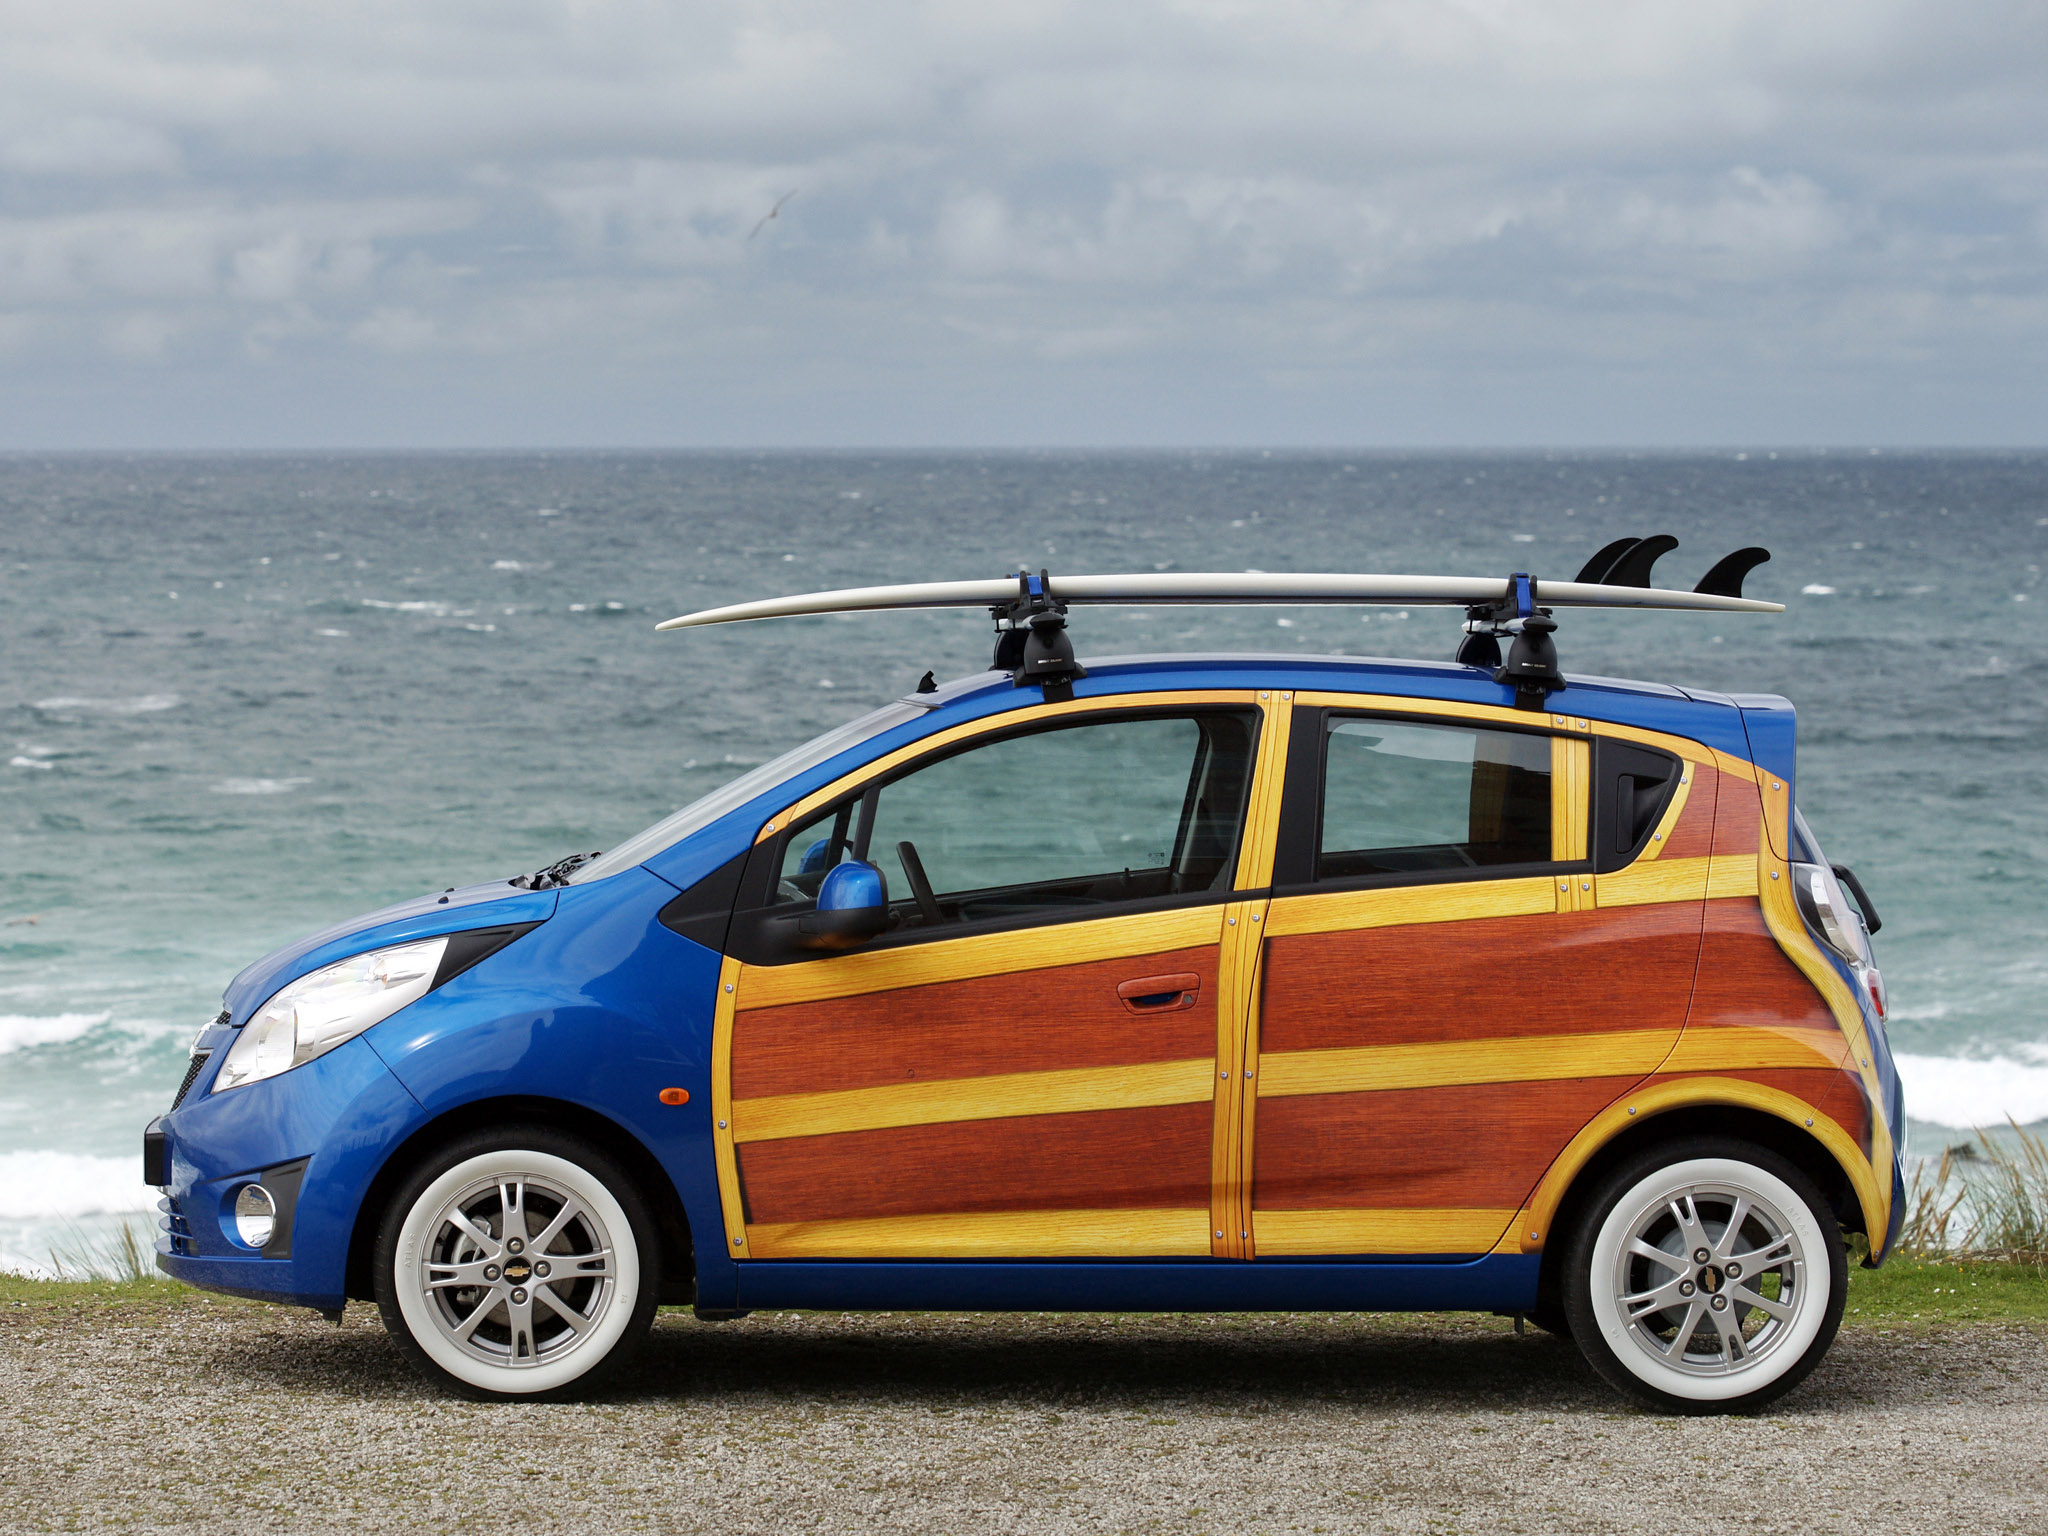 chevrolet spark woody concept 2010 chevrolet spark woody concept 2010 photo 03 car in pictures. Black Bedroom Furniture Sets. Home Design Ideas